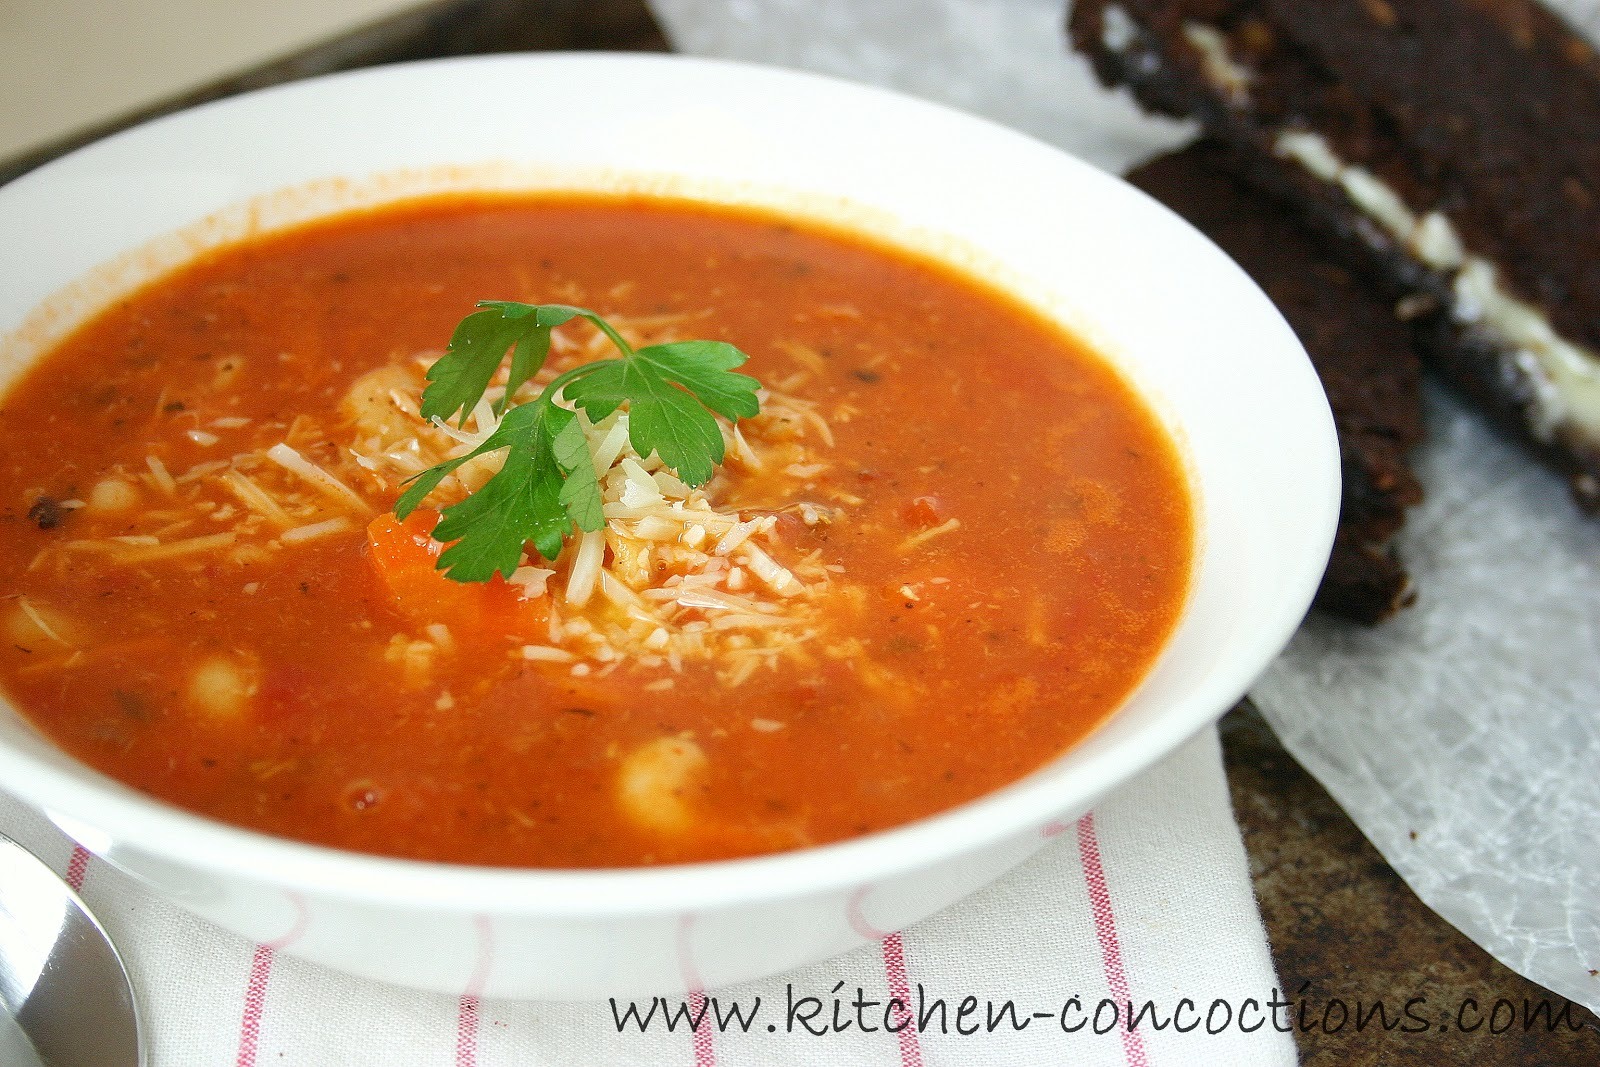 spicy tomato soup livinpaleo spicy tomato soup with herbed flatbreads ...